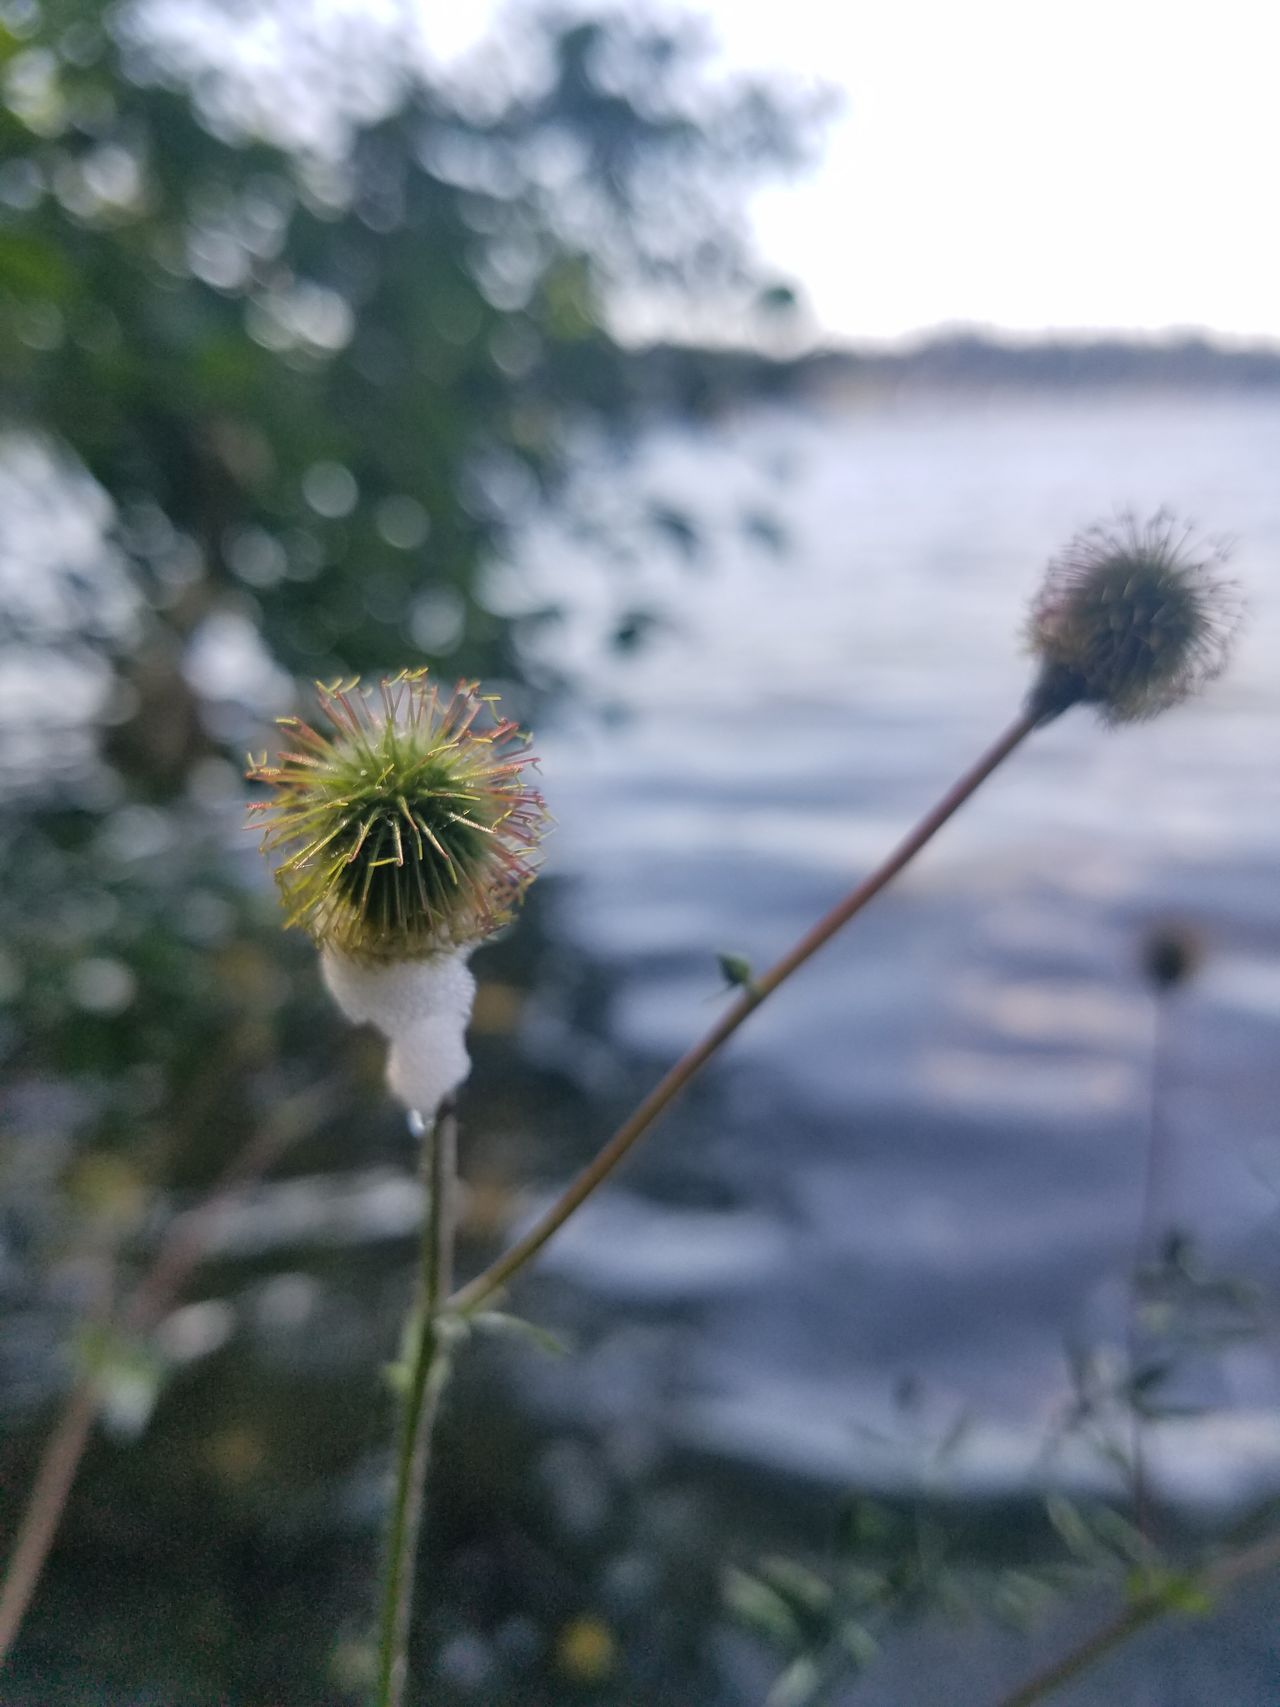 Flower Nature Fragility Plant Freshness Outdoors Botany Beauty In Nature Flower Head Growth Close-up Uncultivated Focus On Foreground Day No People Water Springtime Thistle Sky